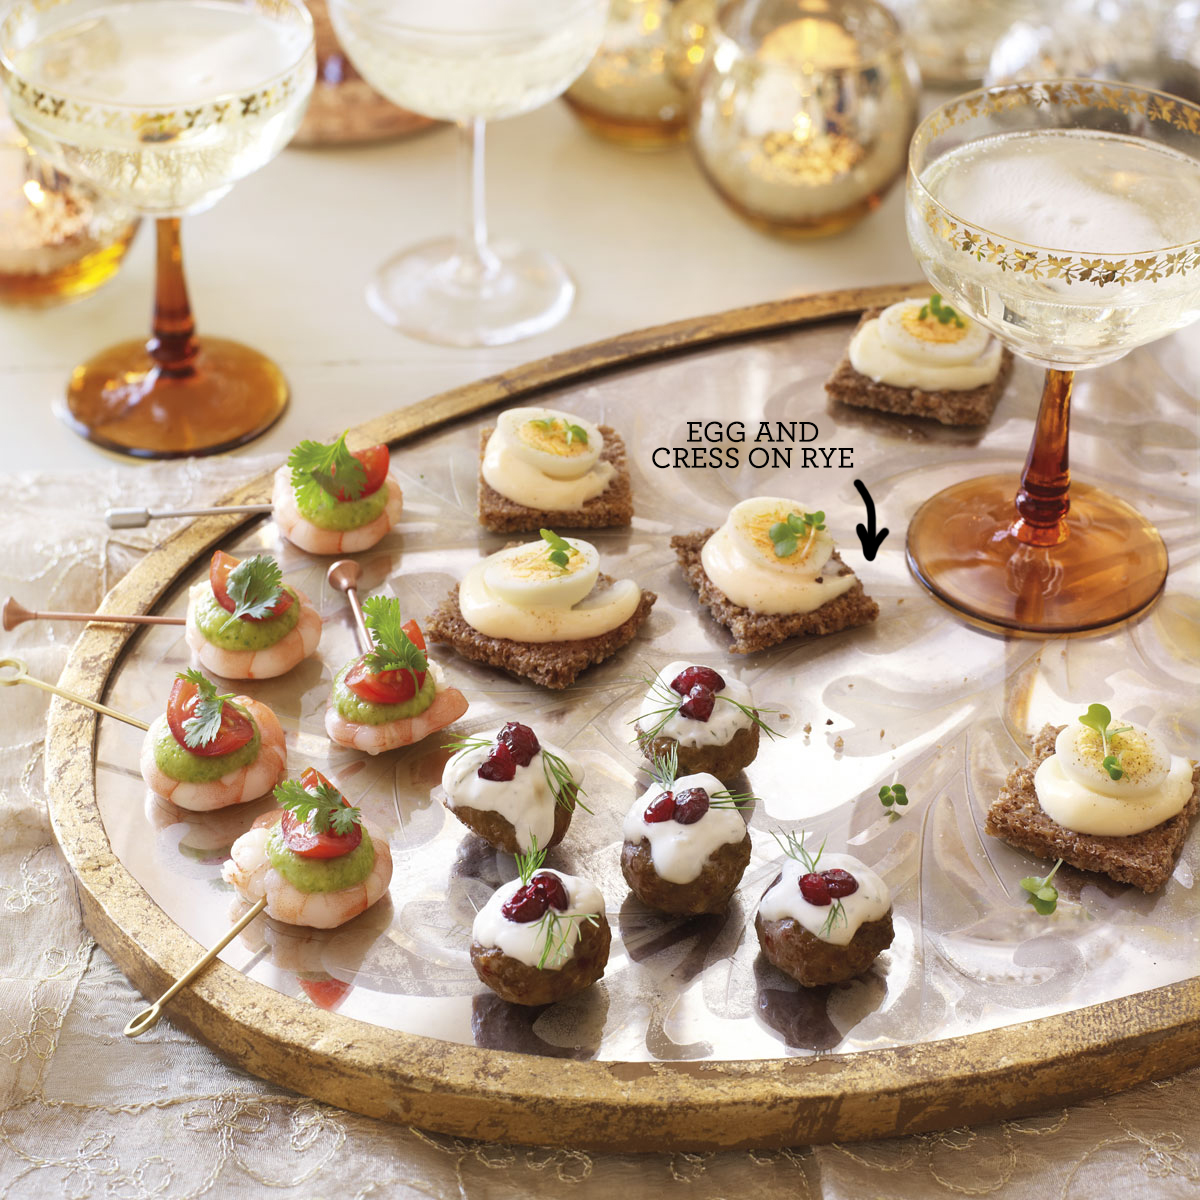 Egg and cress on rye canape recipes good housekeeping for Canape desserts